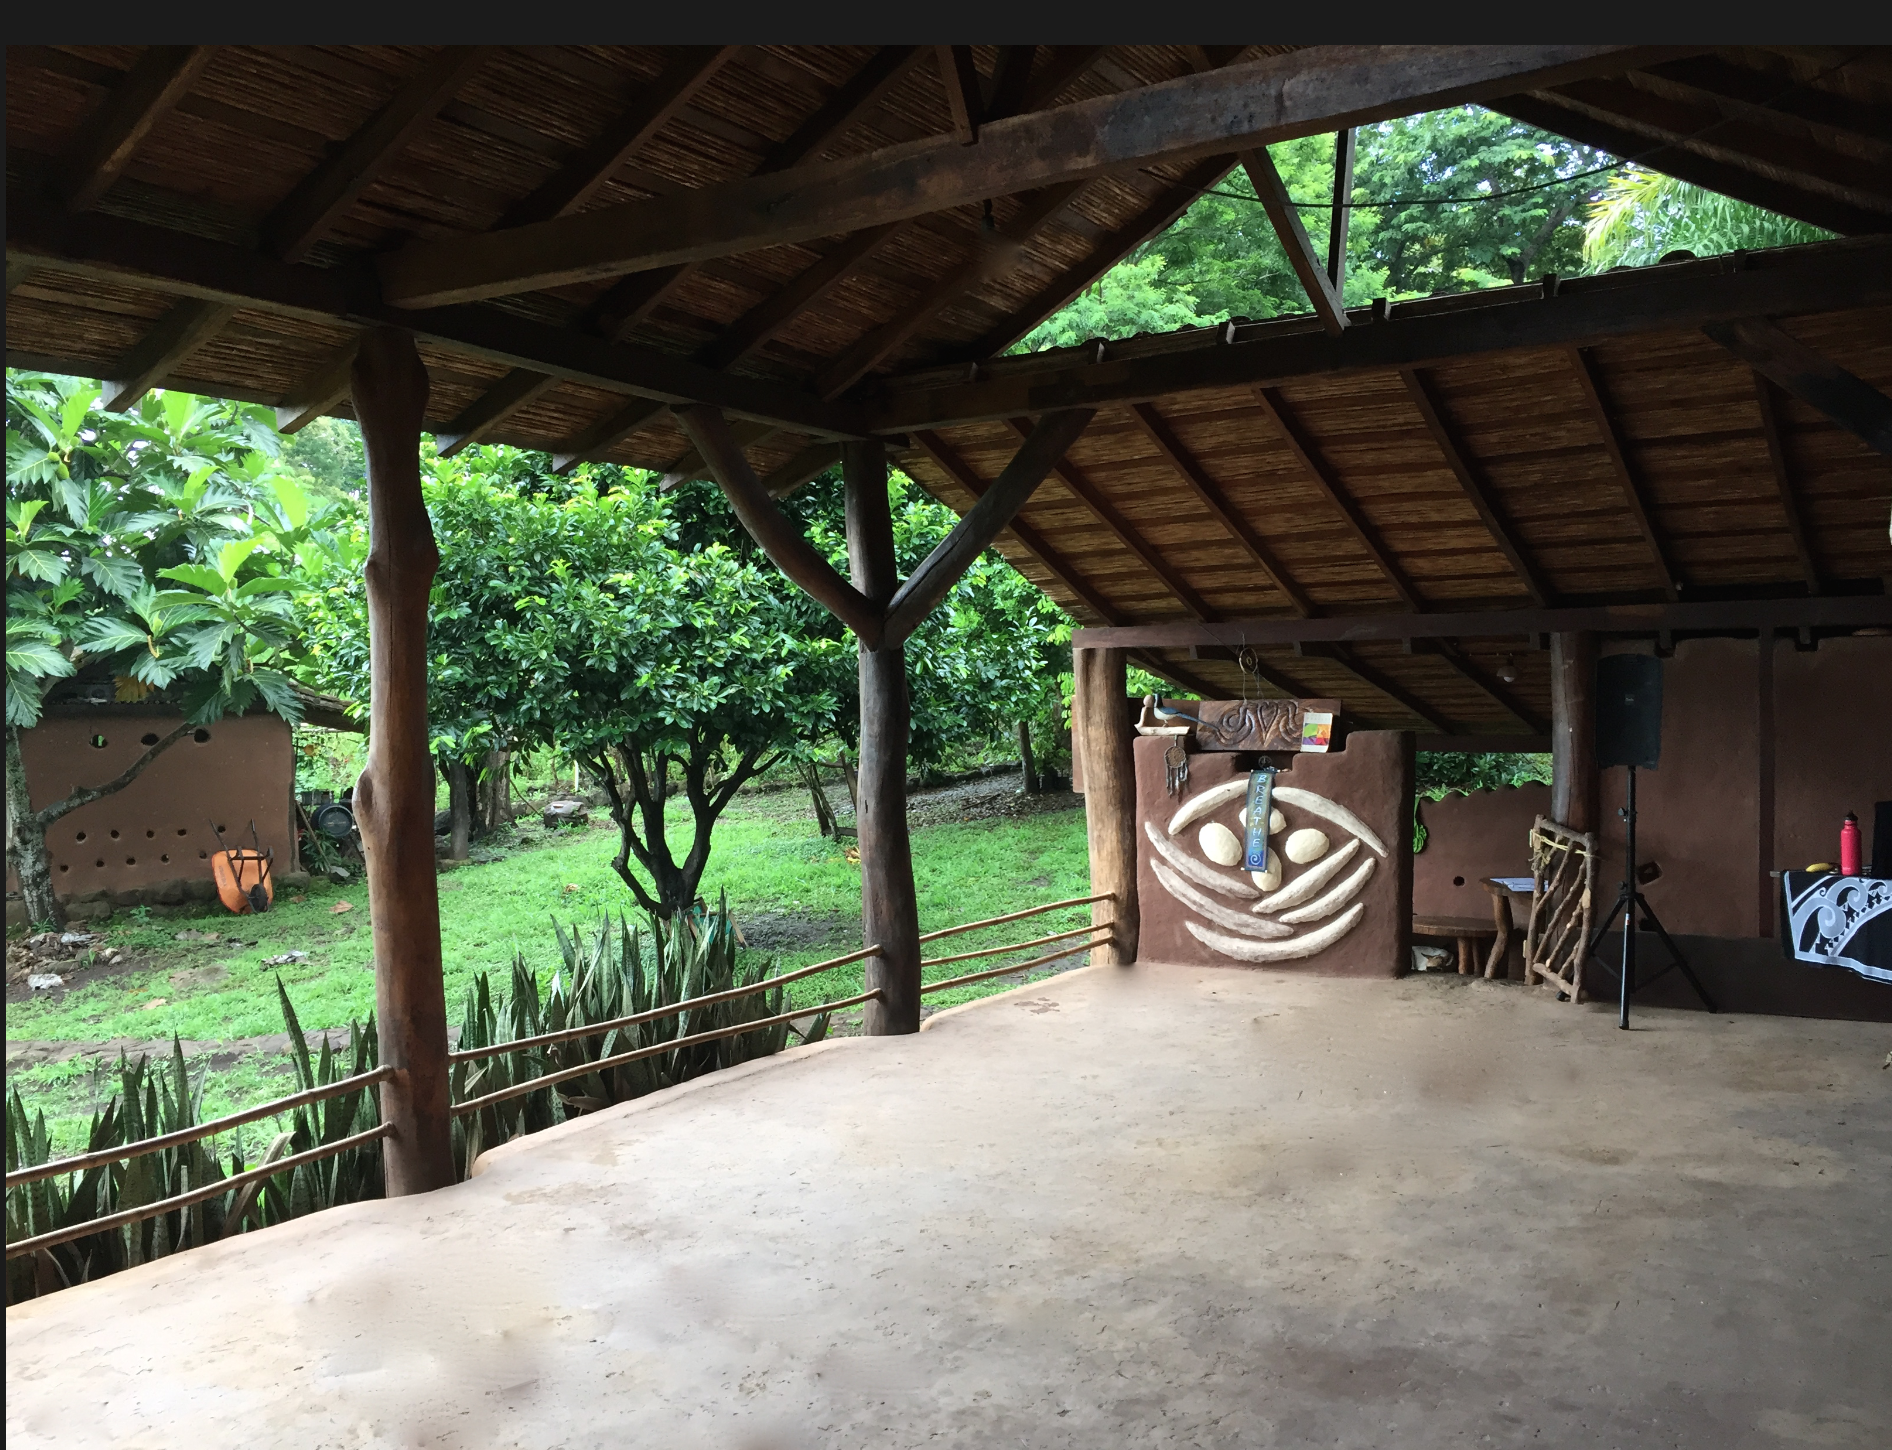 Our magical dance space connected to the lush tropical forest all around us!